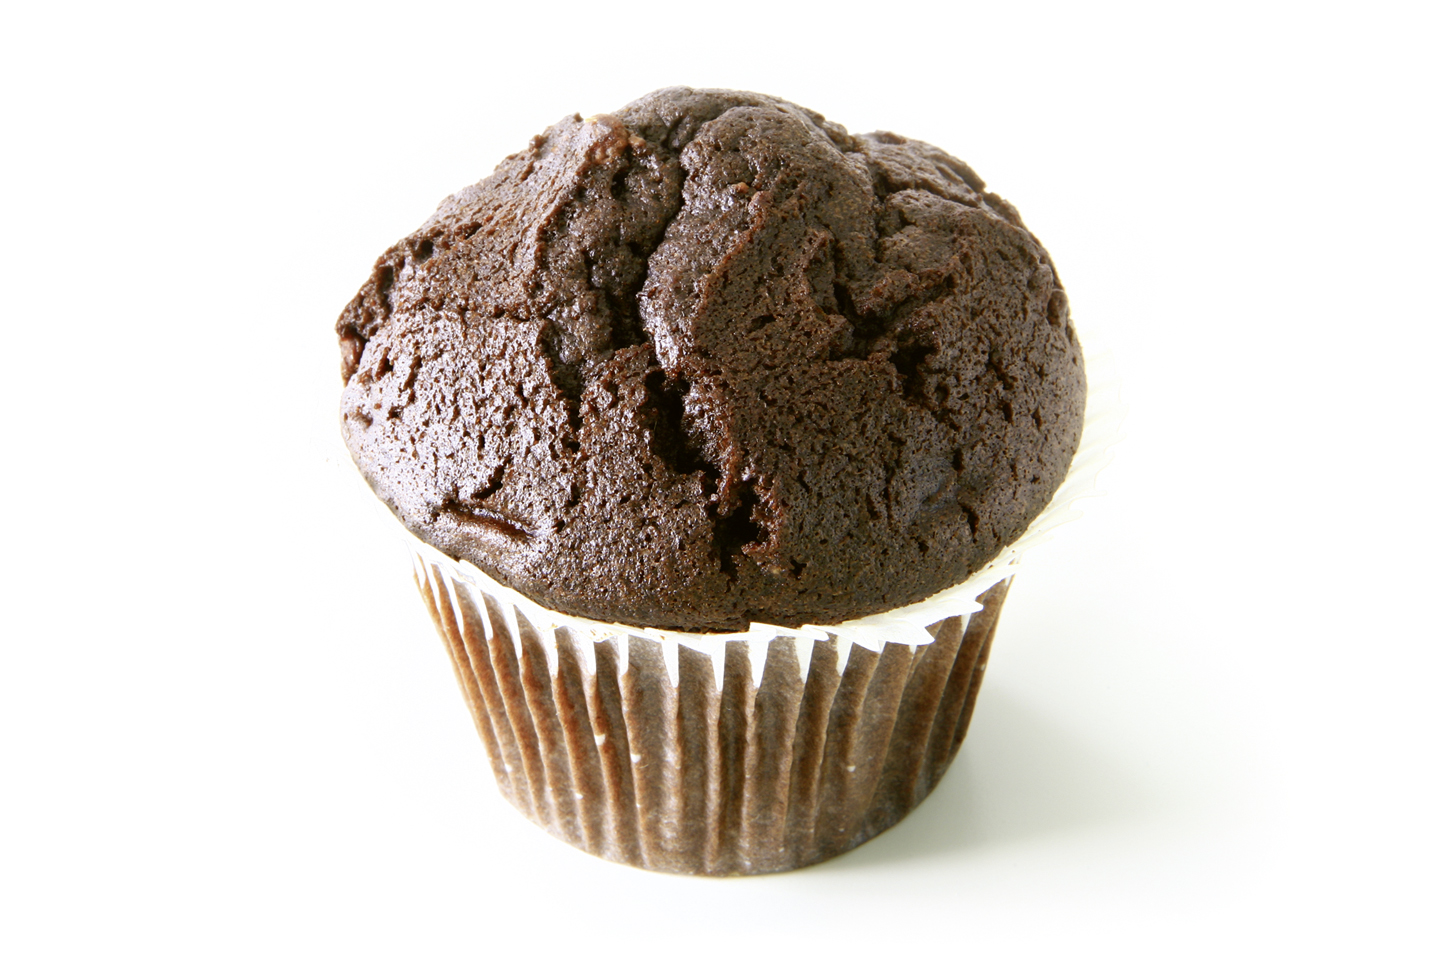 Muffin Chocolate - Small batter cake with 6% chocolate chips/ thaw only